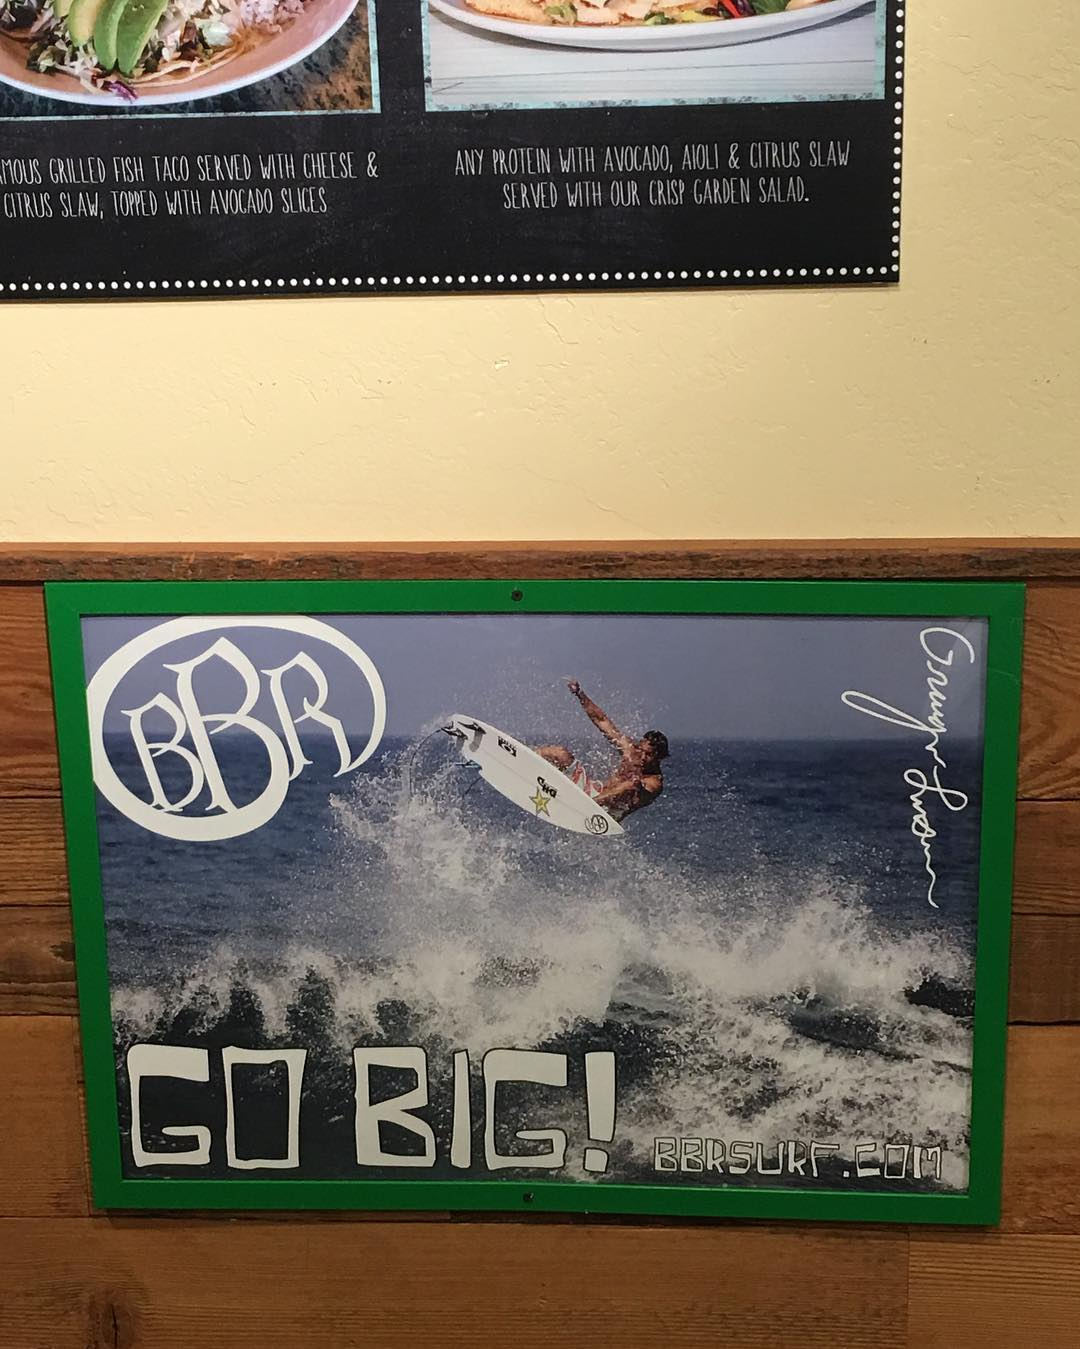 Woohoo at Wahoos Fish Taco in Fashion Island in Newport Beach. Best fish tacos anywhere.  #gobig #grangerlarsen #bbr #bbrsurf #bbrsurfwear #buccaneerboardriders #wahoos #wahoosfishtaco #fishraco